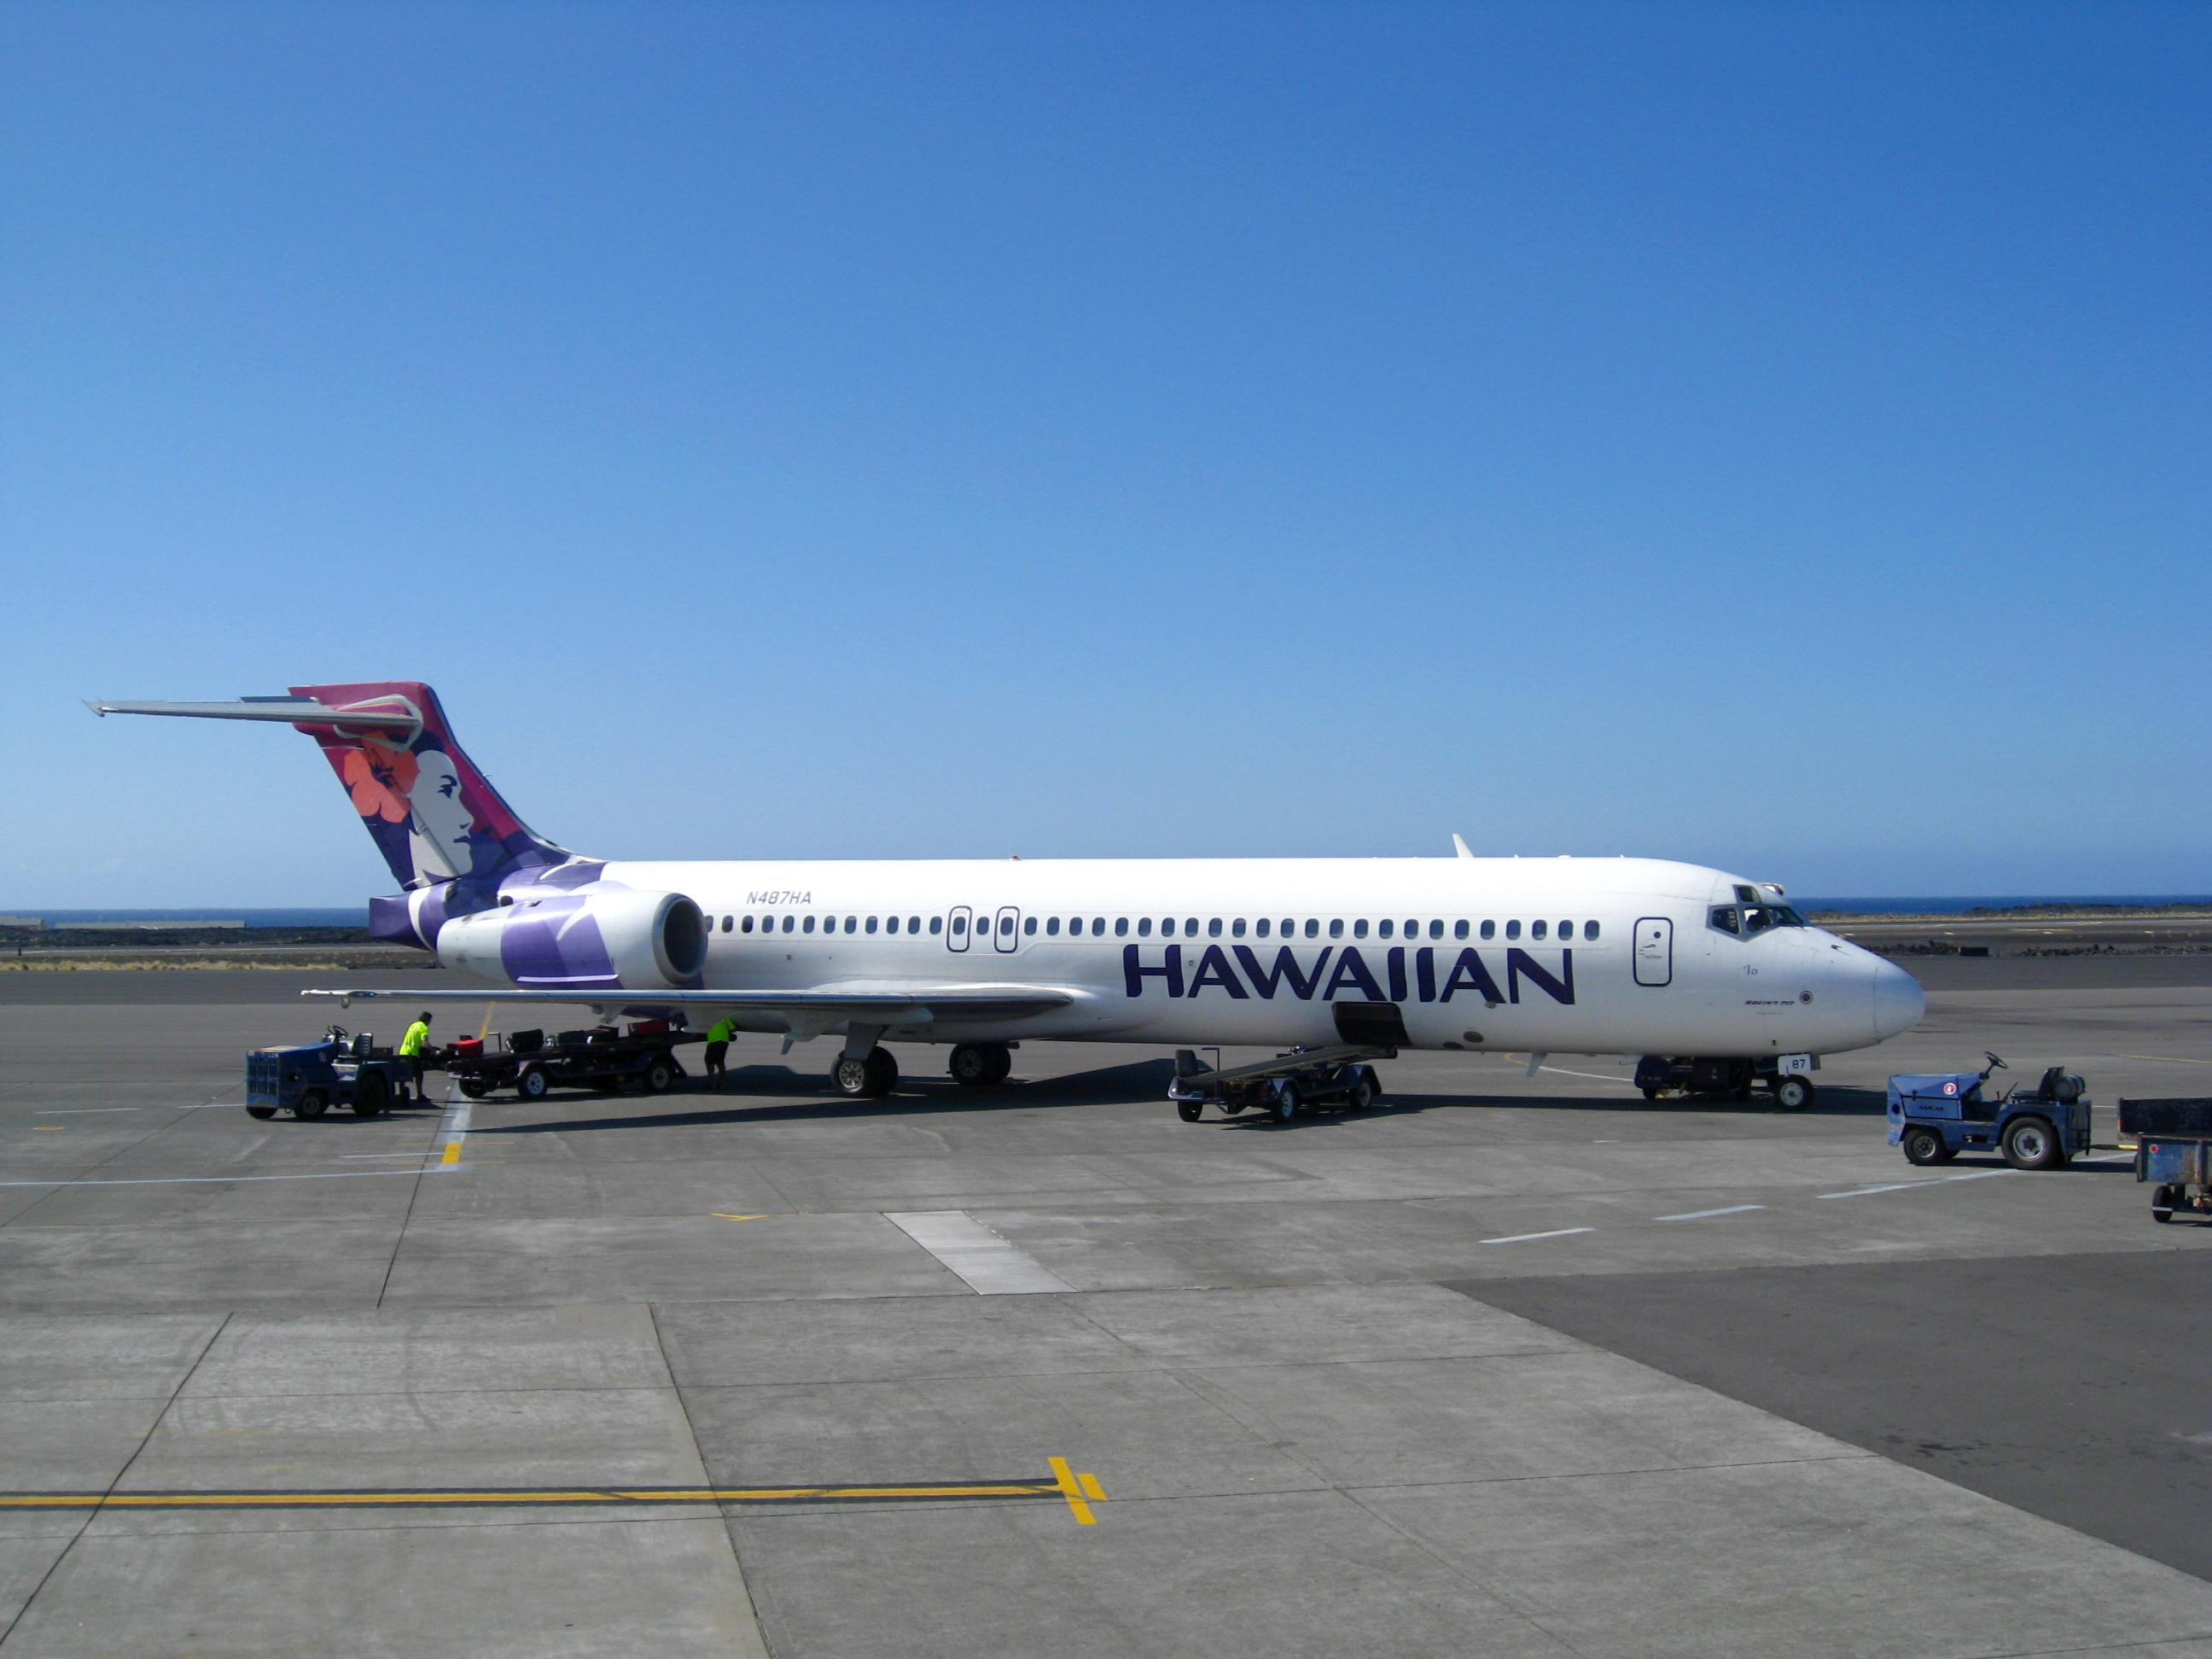 http://upload.wikimedia.org/wikipedia/commons/c/cb/Hawaiian_Airlines.Boeing_717-200.KOA.2009.jpg